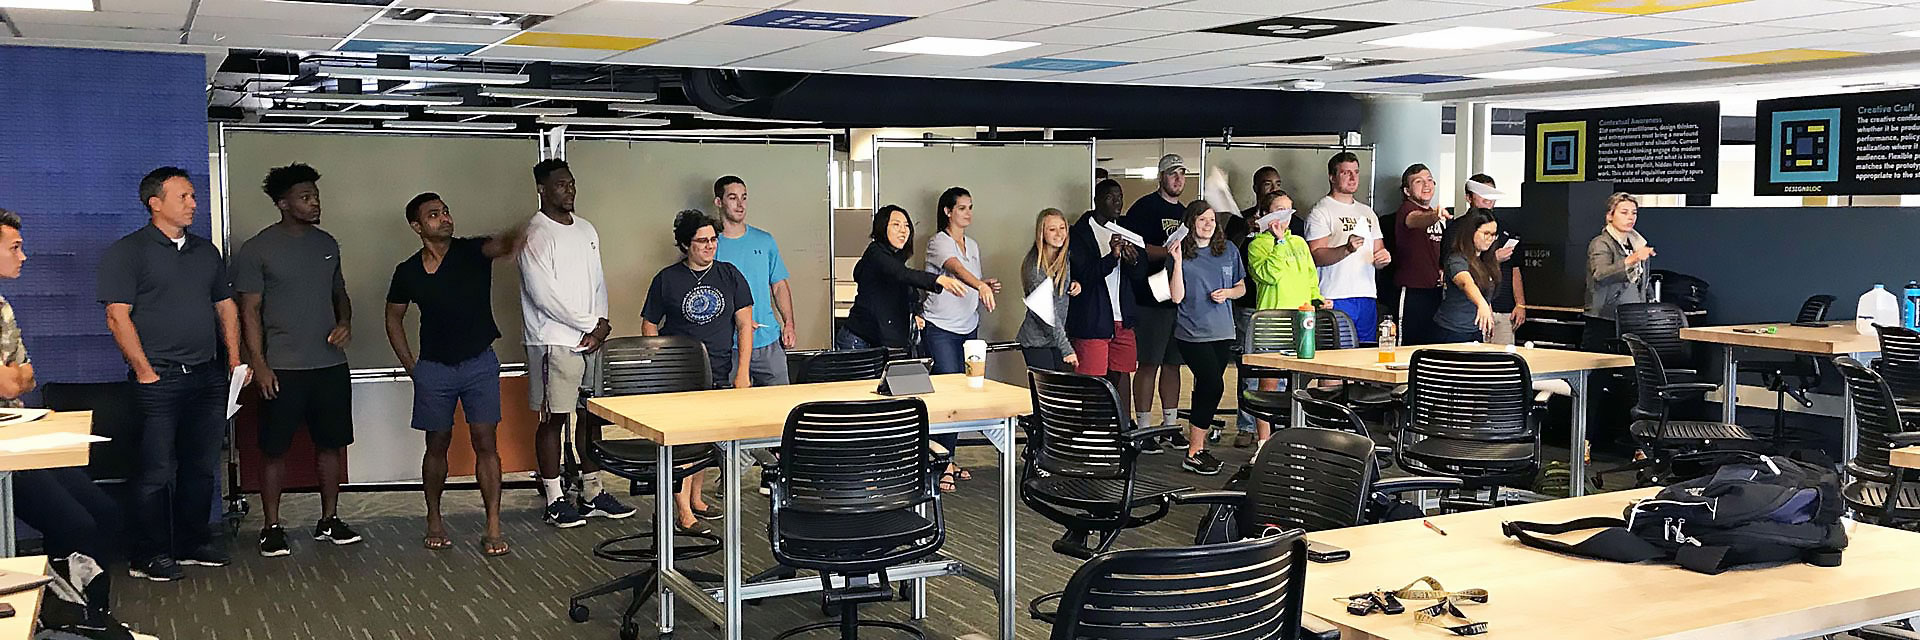 Participants in a Rapid Iteration workshop sail their paper airplanes across the classroom during one iteration of testing.